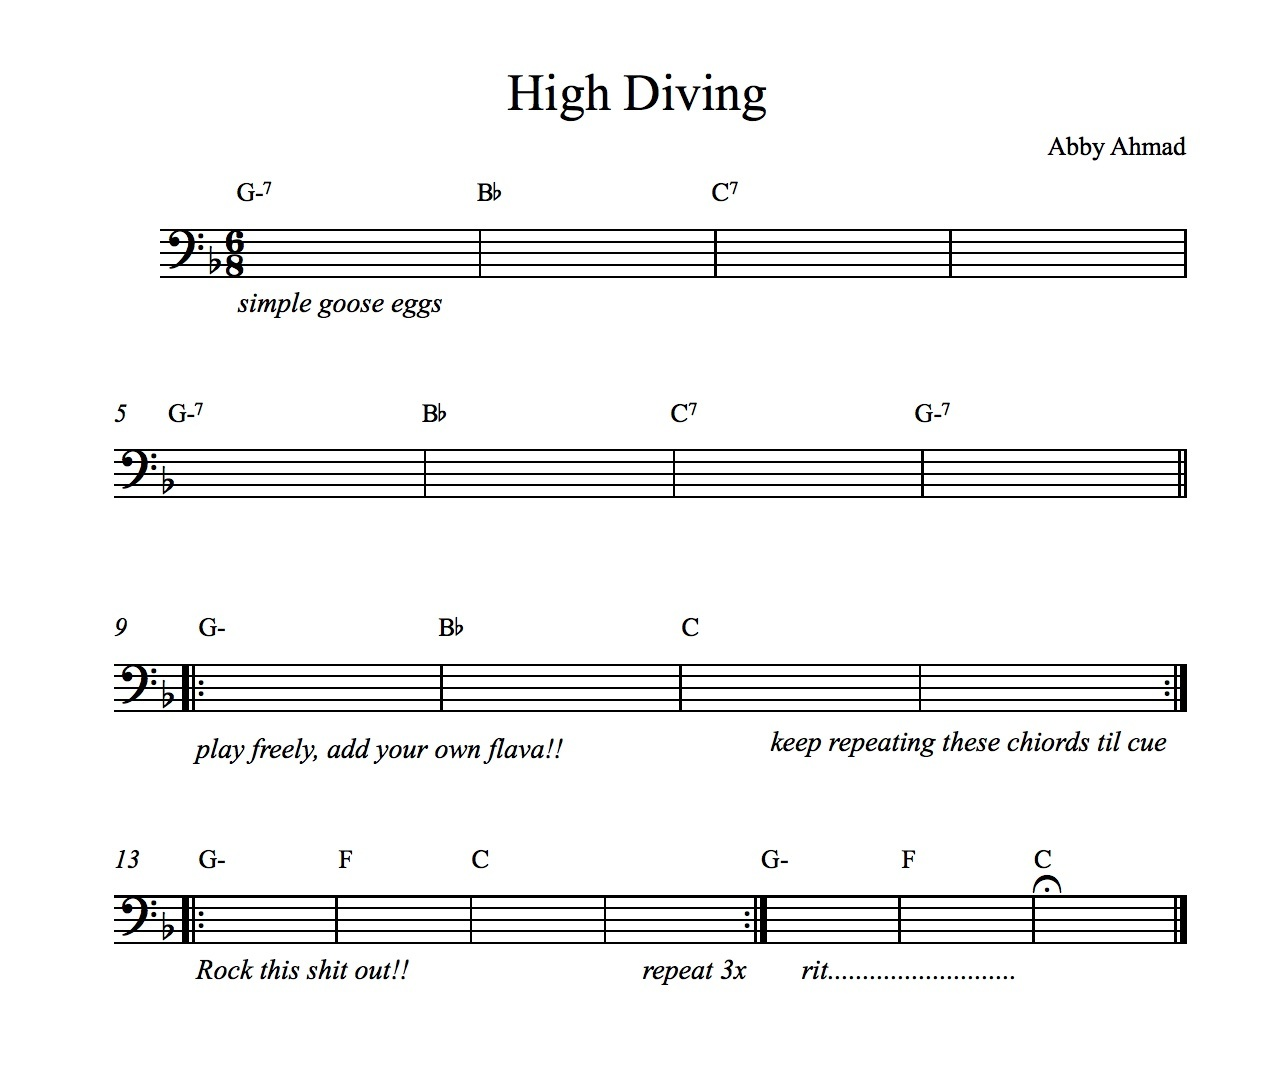 High Diving by Abby Ahmad Chart